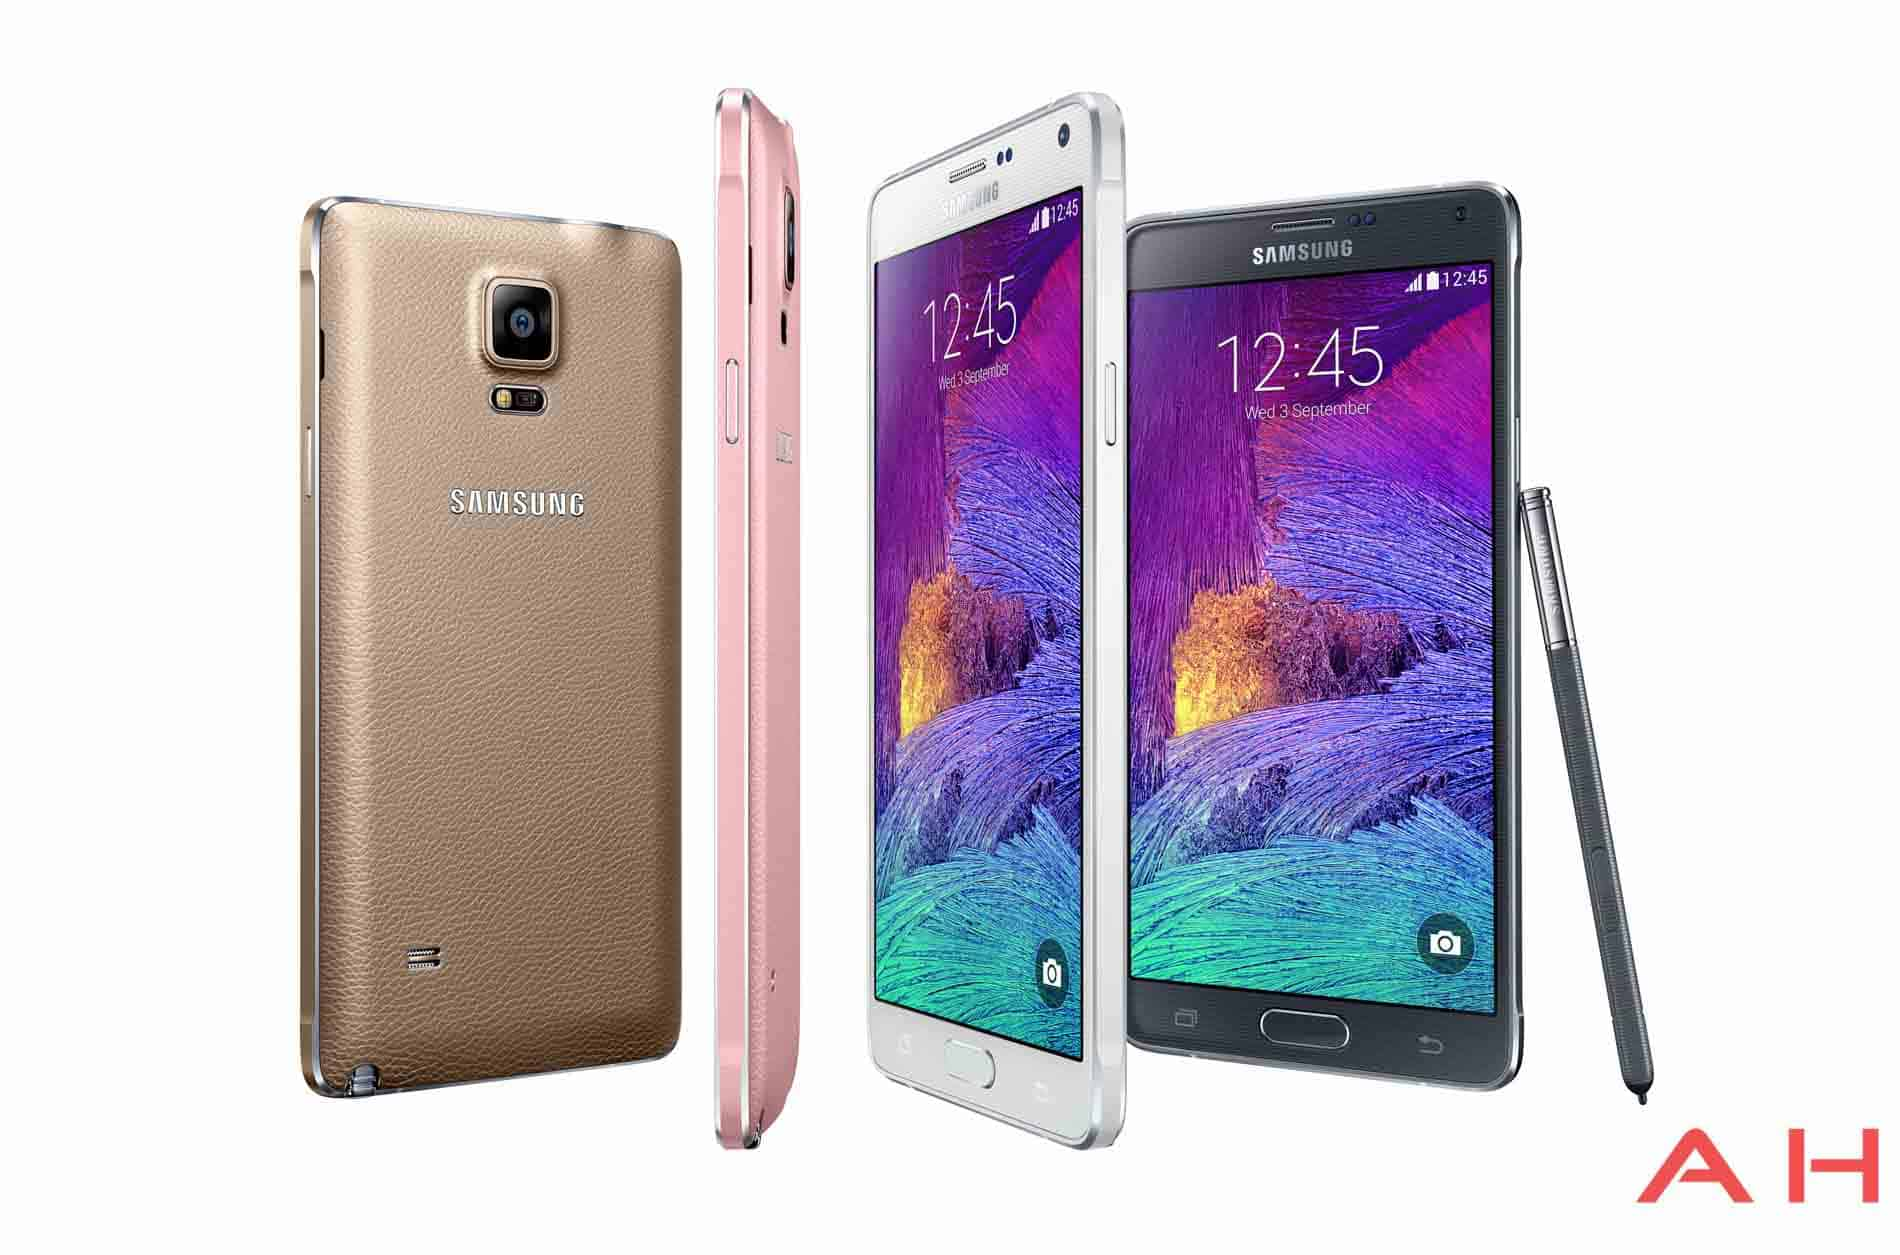 Samsung-Galaxy-Note-4-AH-16